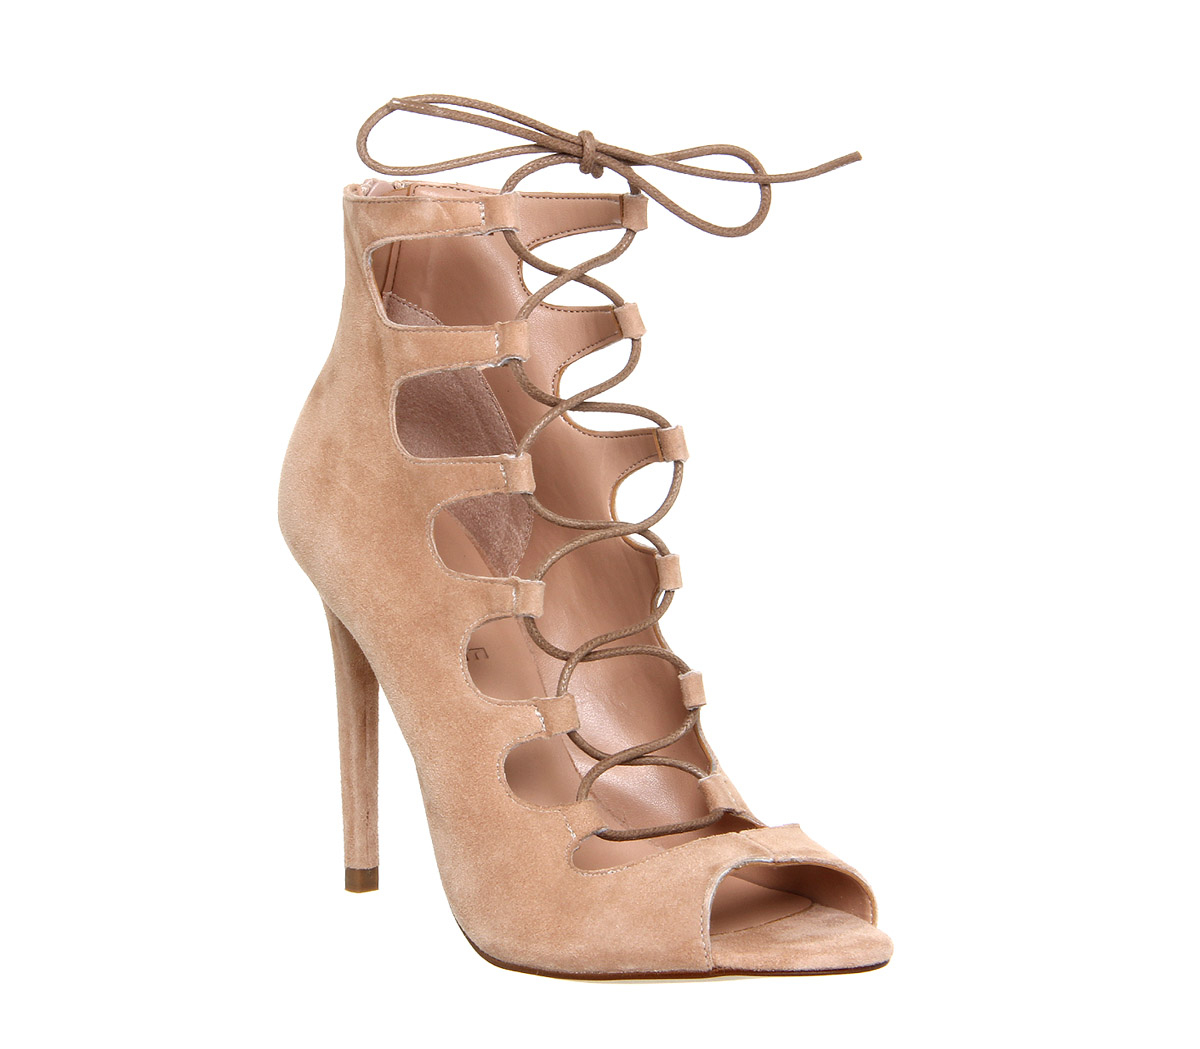 Lace Up Heels For Women